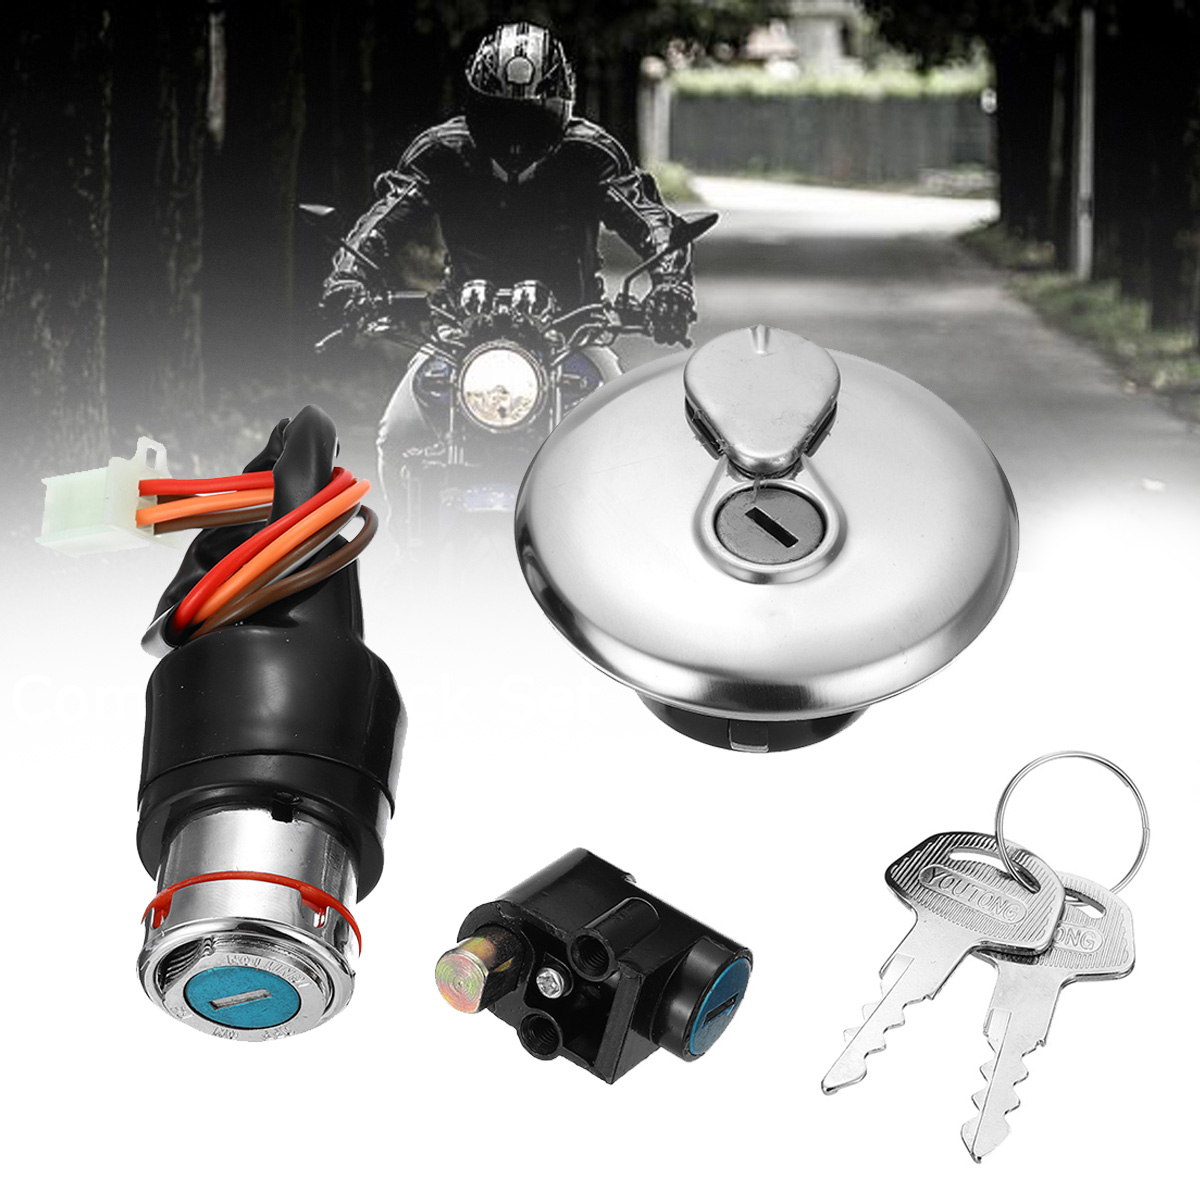 Motorcycle Gas Fuel Tank Cap Cover Lock /& 2 Keys Fit Suzuki GN125 GN250 GN 250